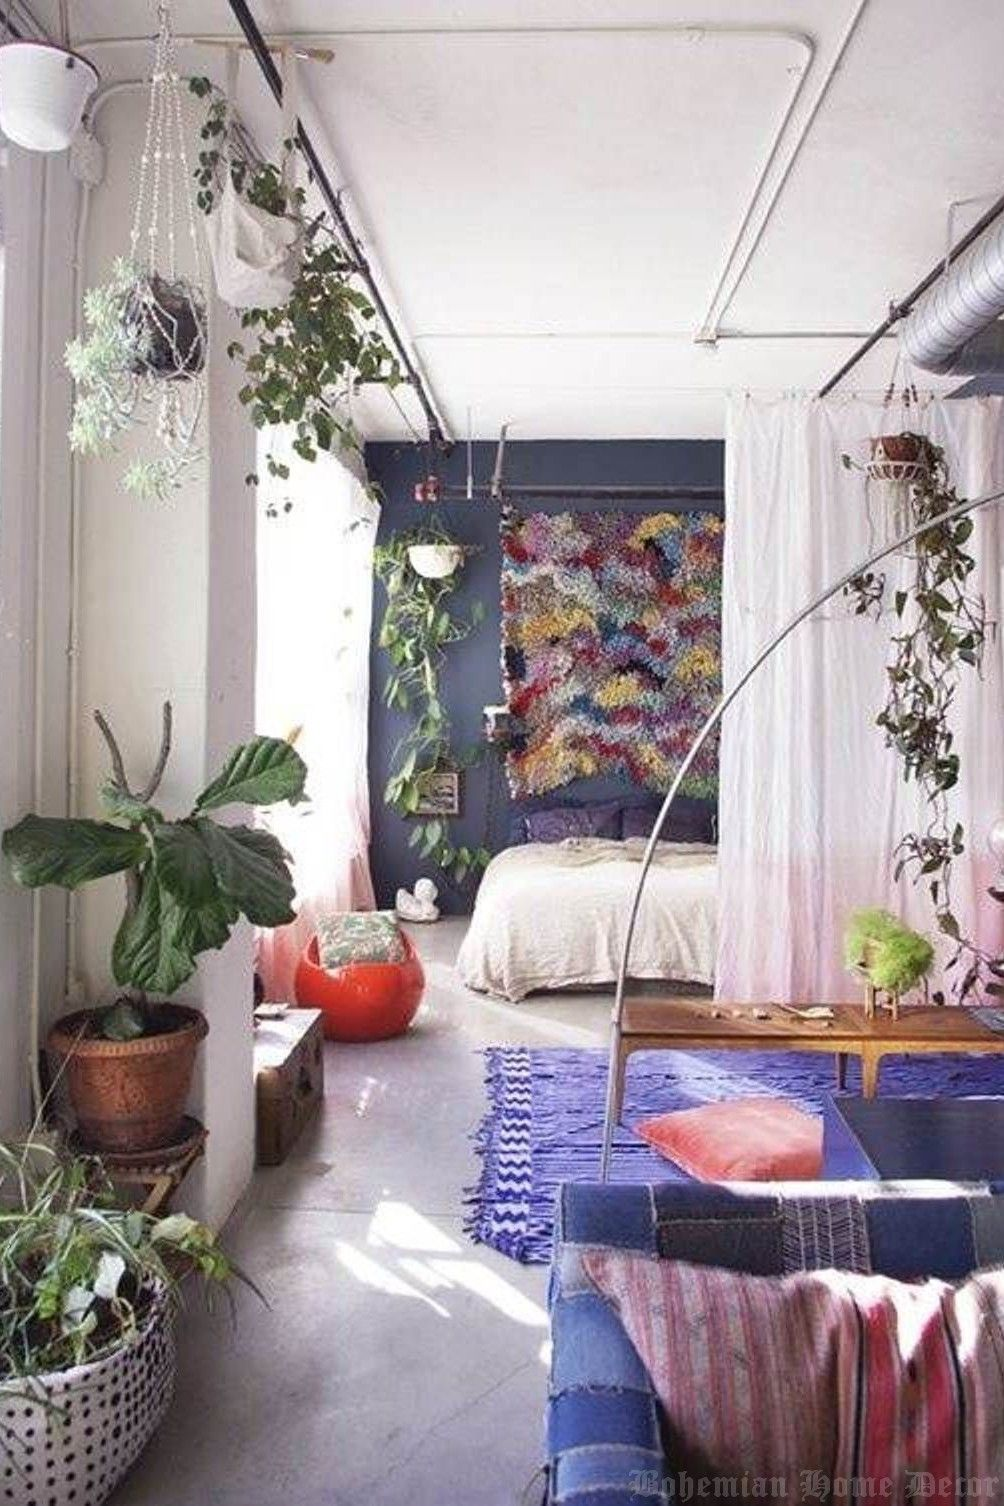 Bohemian Home Decor Experiment: Good or Bad? Oct 2020